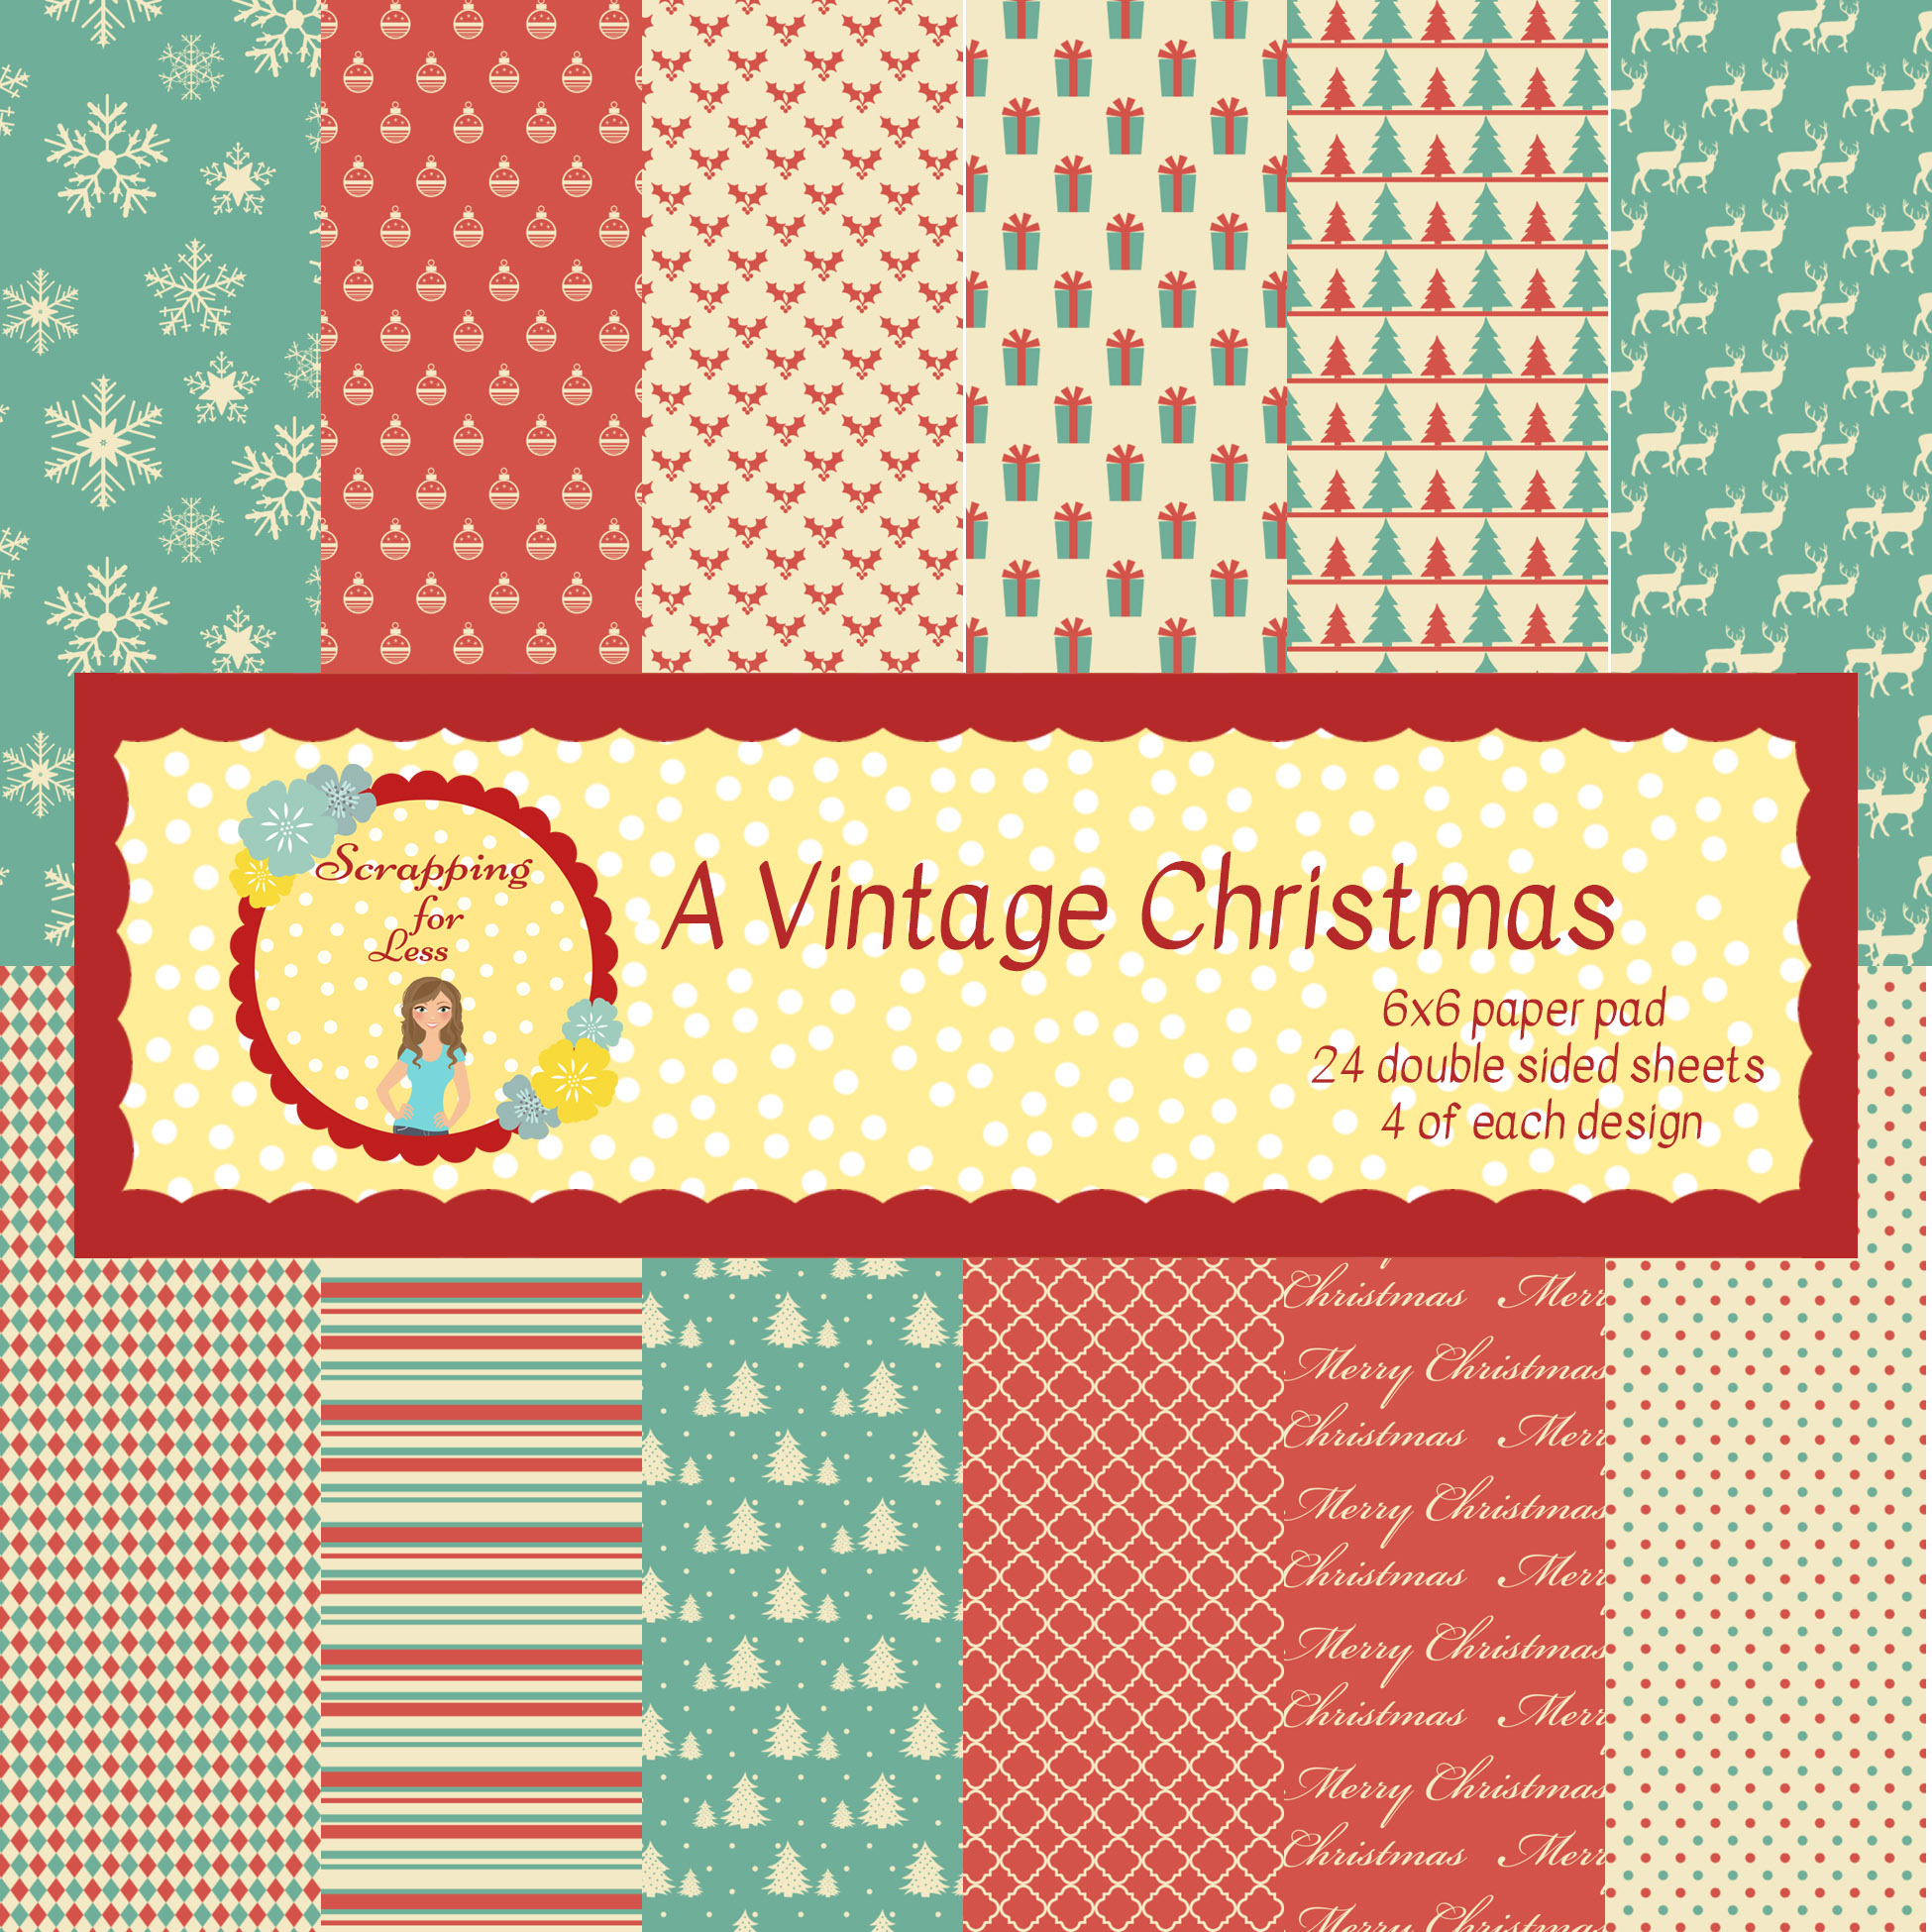 Scrapping for Less A Vintage Christmas 6x6 Paper Pad